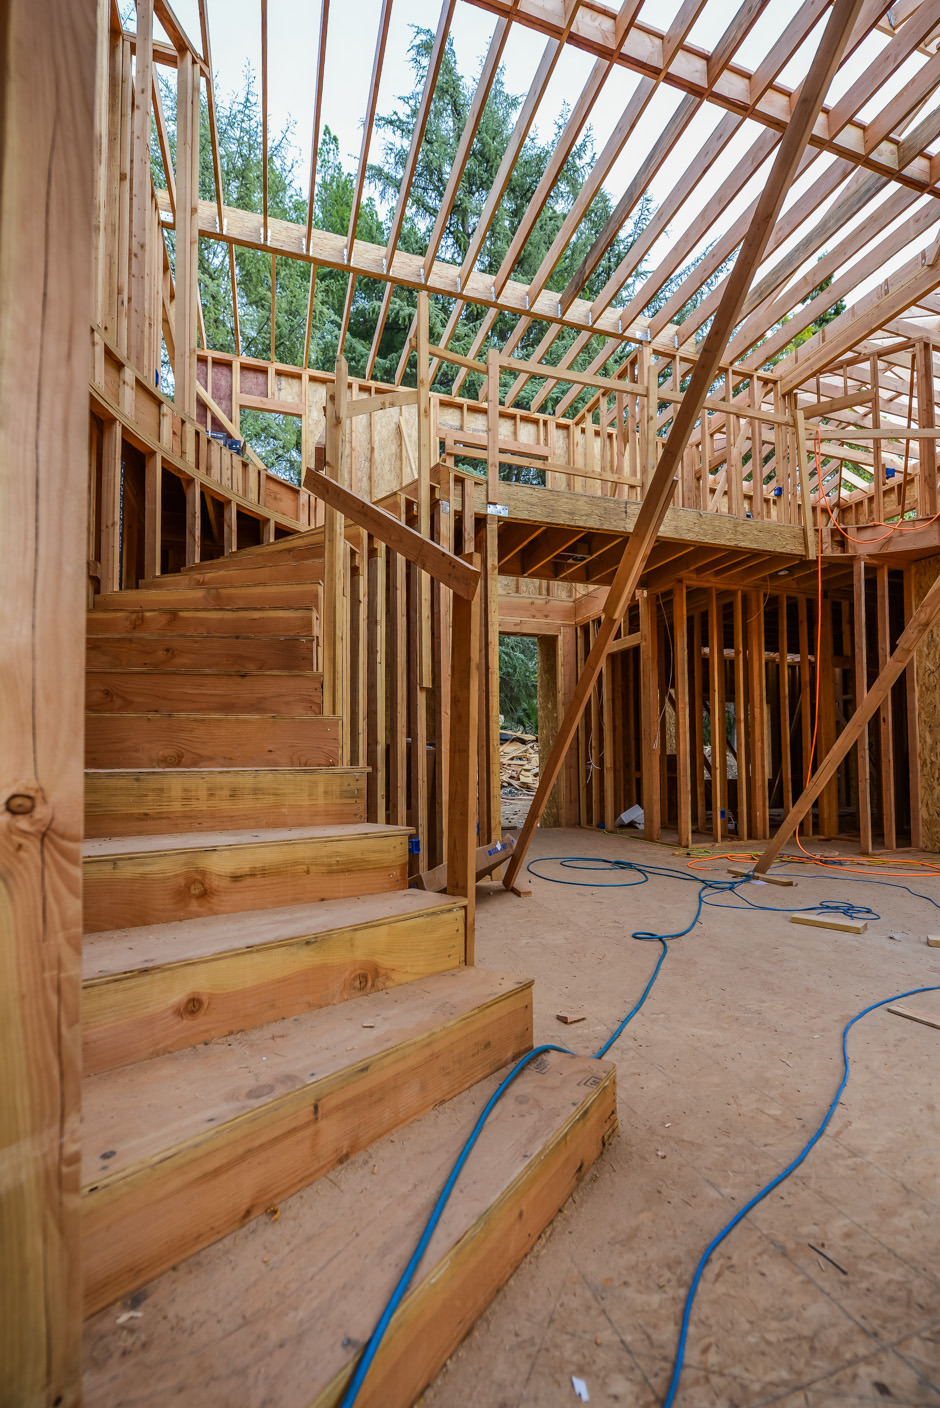 la canada new construction rebuild addition architect rash studio structural hillside permit development framing foundation homes custom residential project